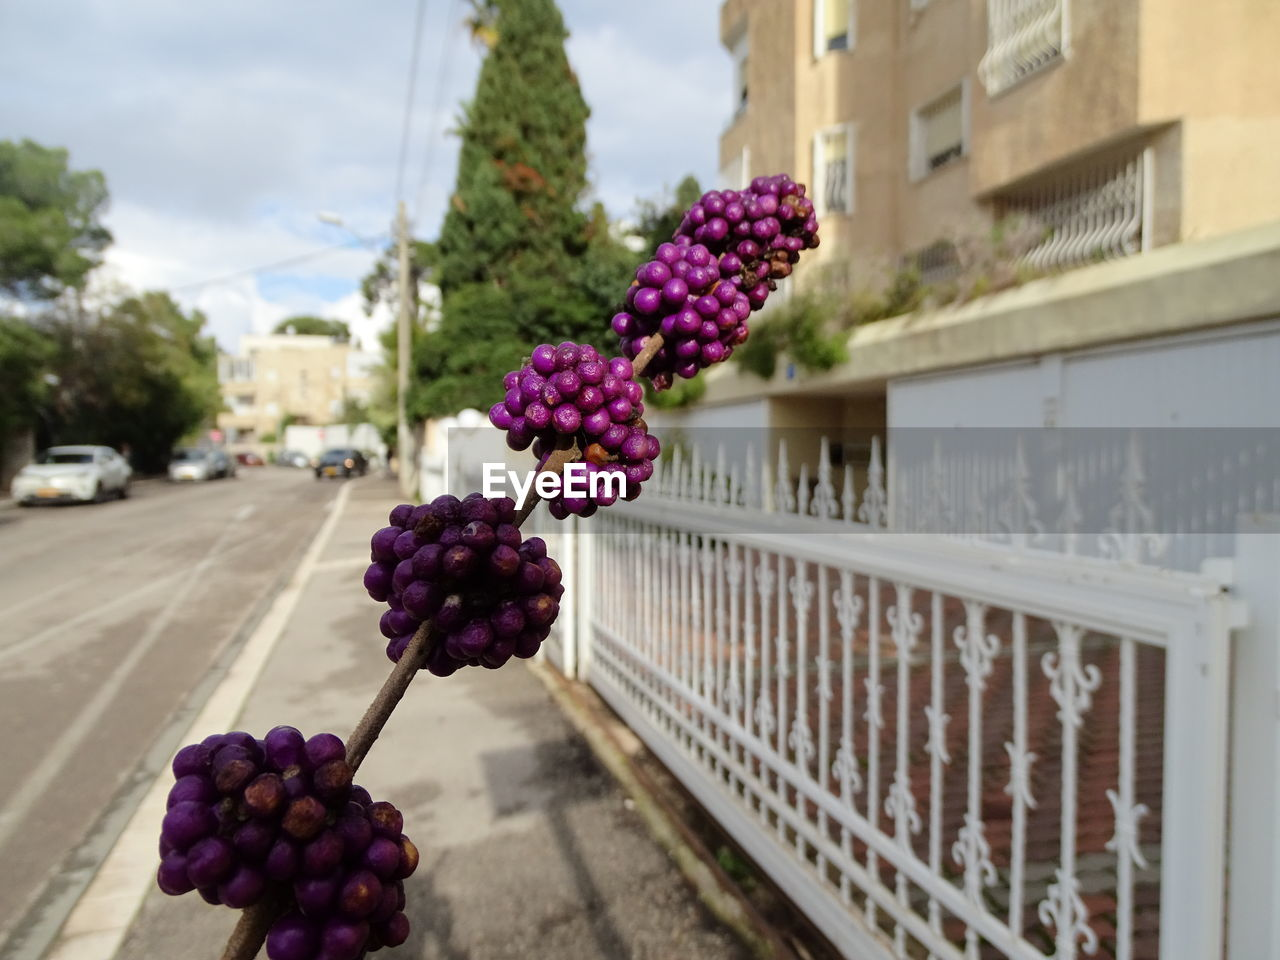 freshness, plant, flower, flowering plant, focus on foreground, nature, architecture, building exterior, day, food and drink, fruit, built structure, healthy eating, no people, transportation, food, close-up, city, outdoors, wellbeing, purple, flower arrangement, bouquet